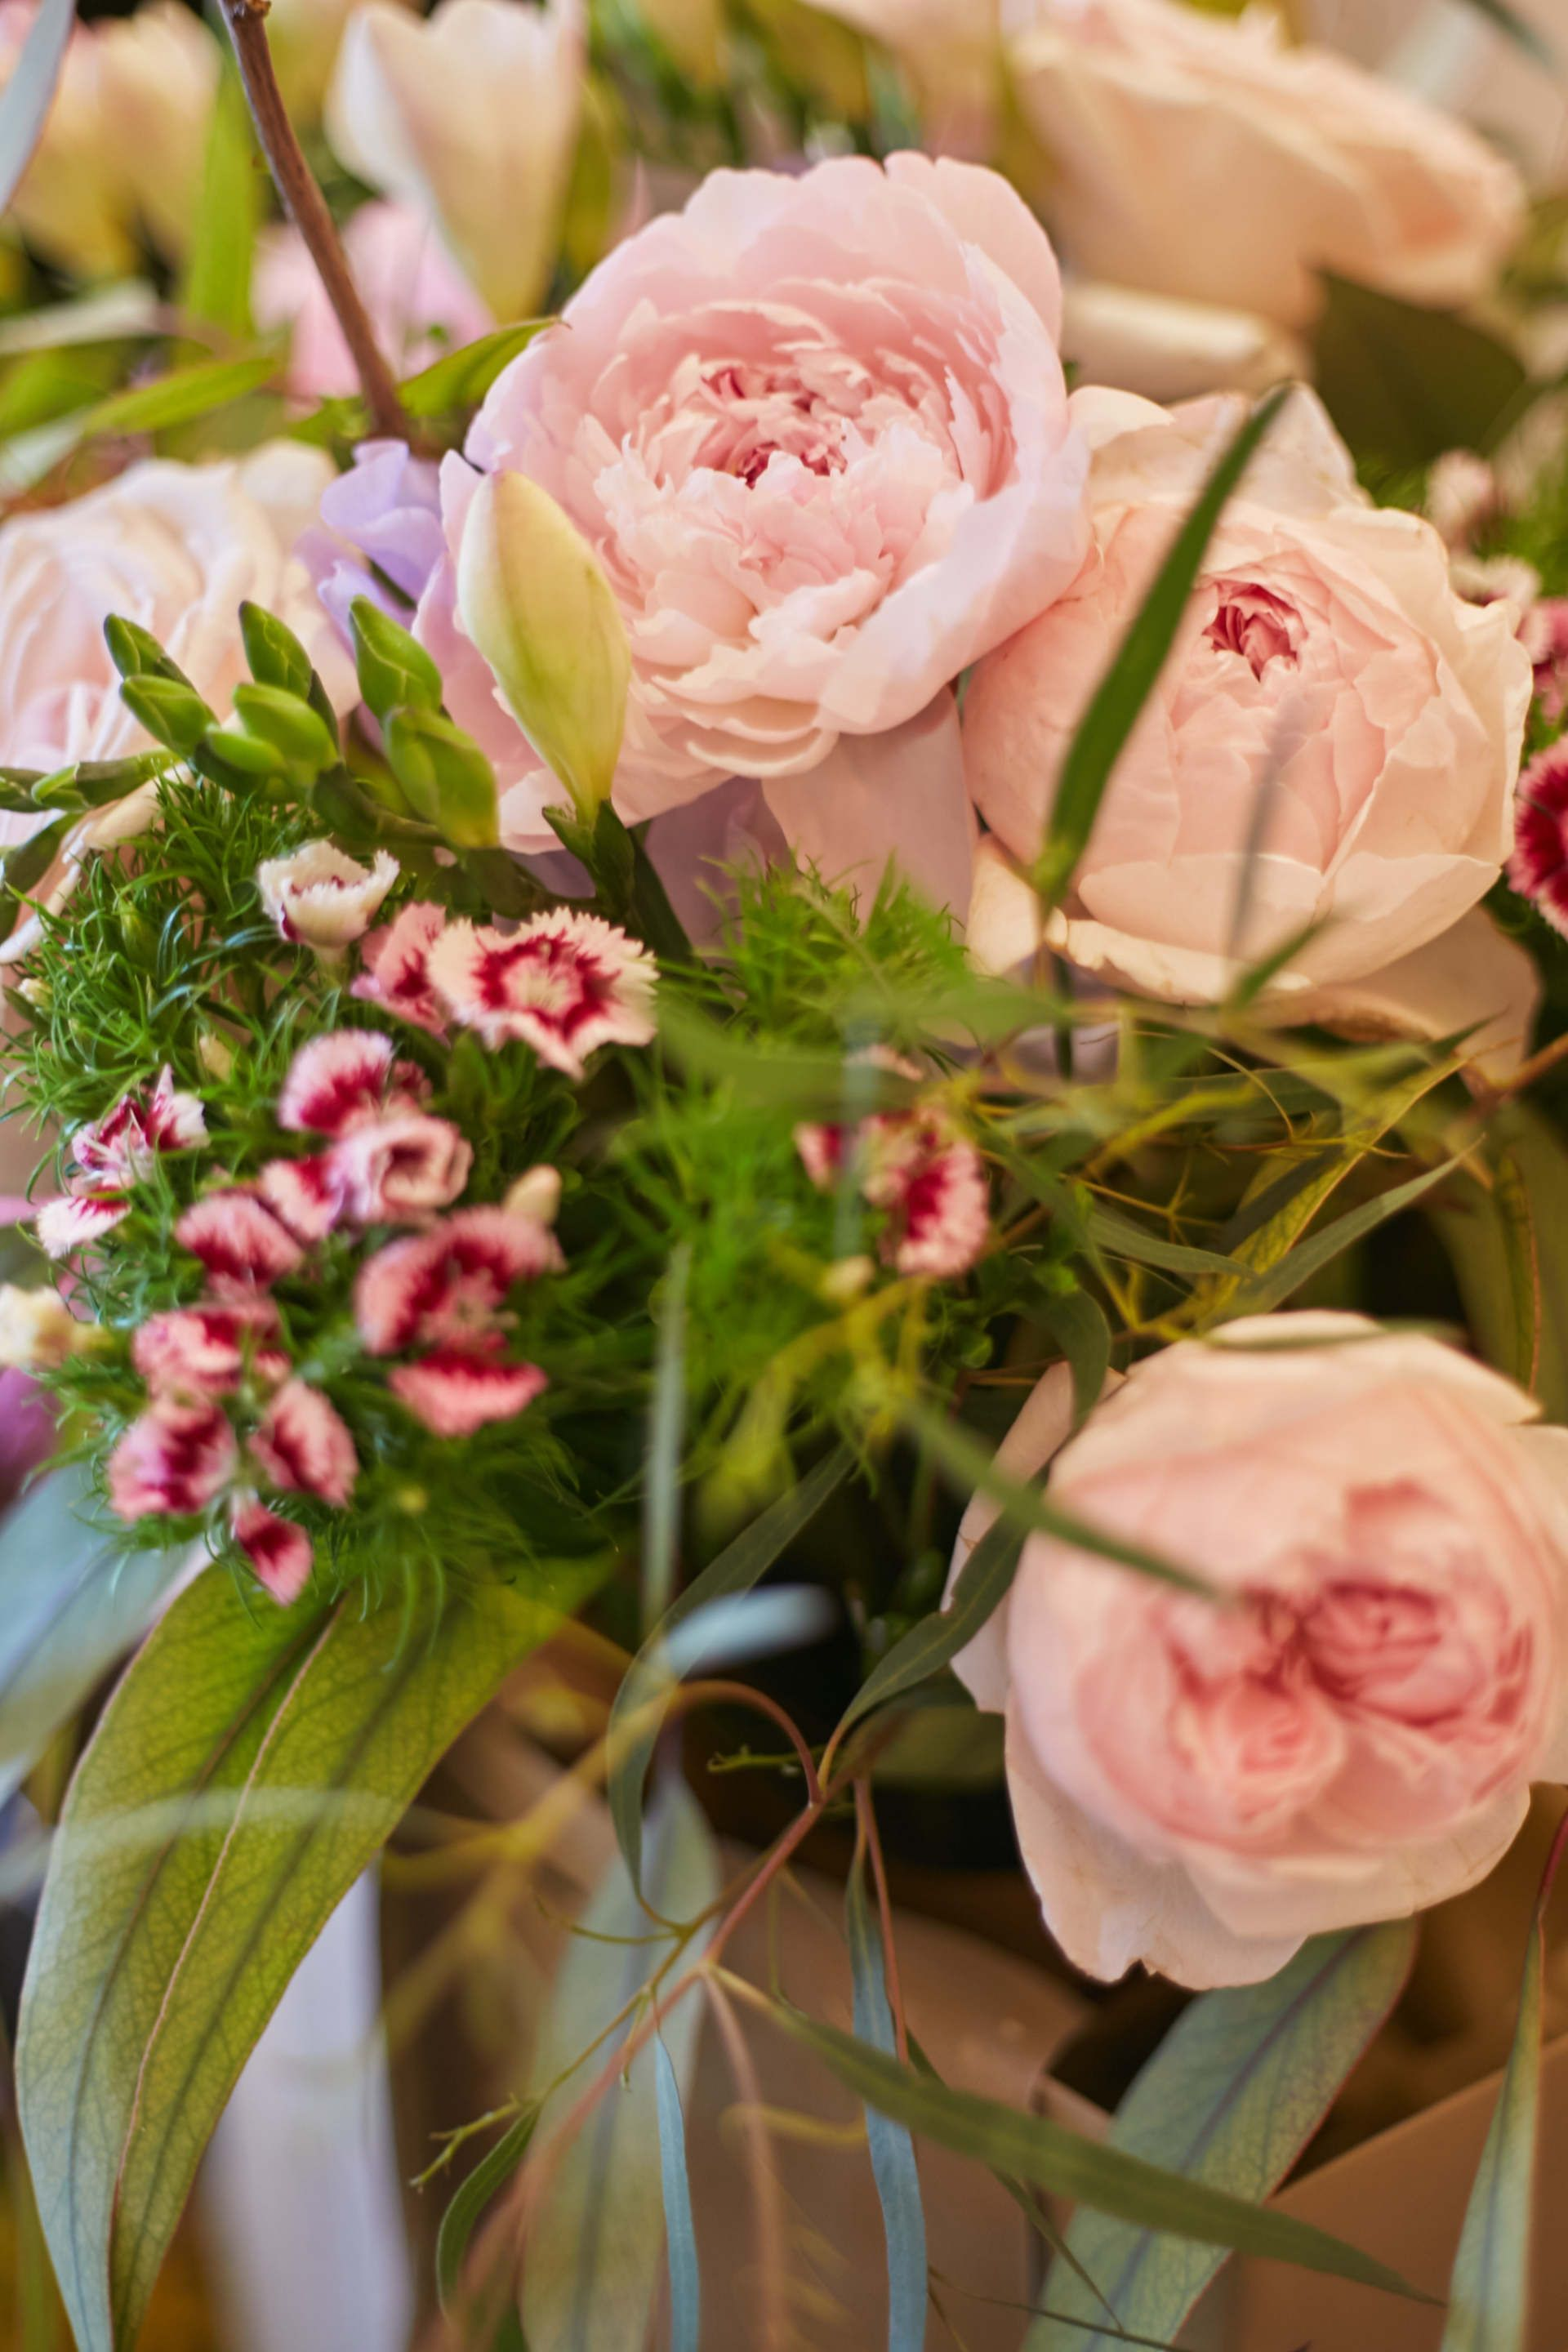 Burberry thomass cafe for a special mothers day peony flowers burberry thomass cafe for a special mothers day inthefrow floral bouquetsbeautiful izmirmasajfo Images